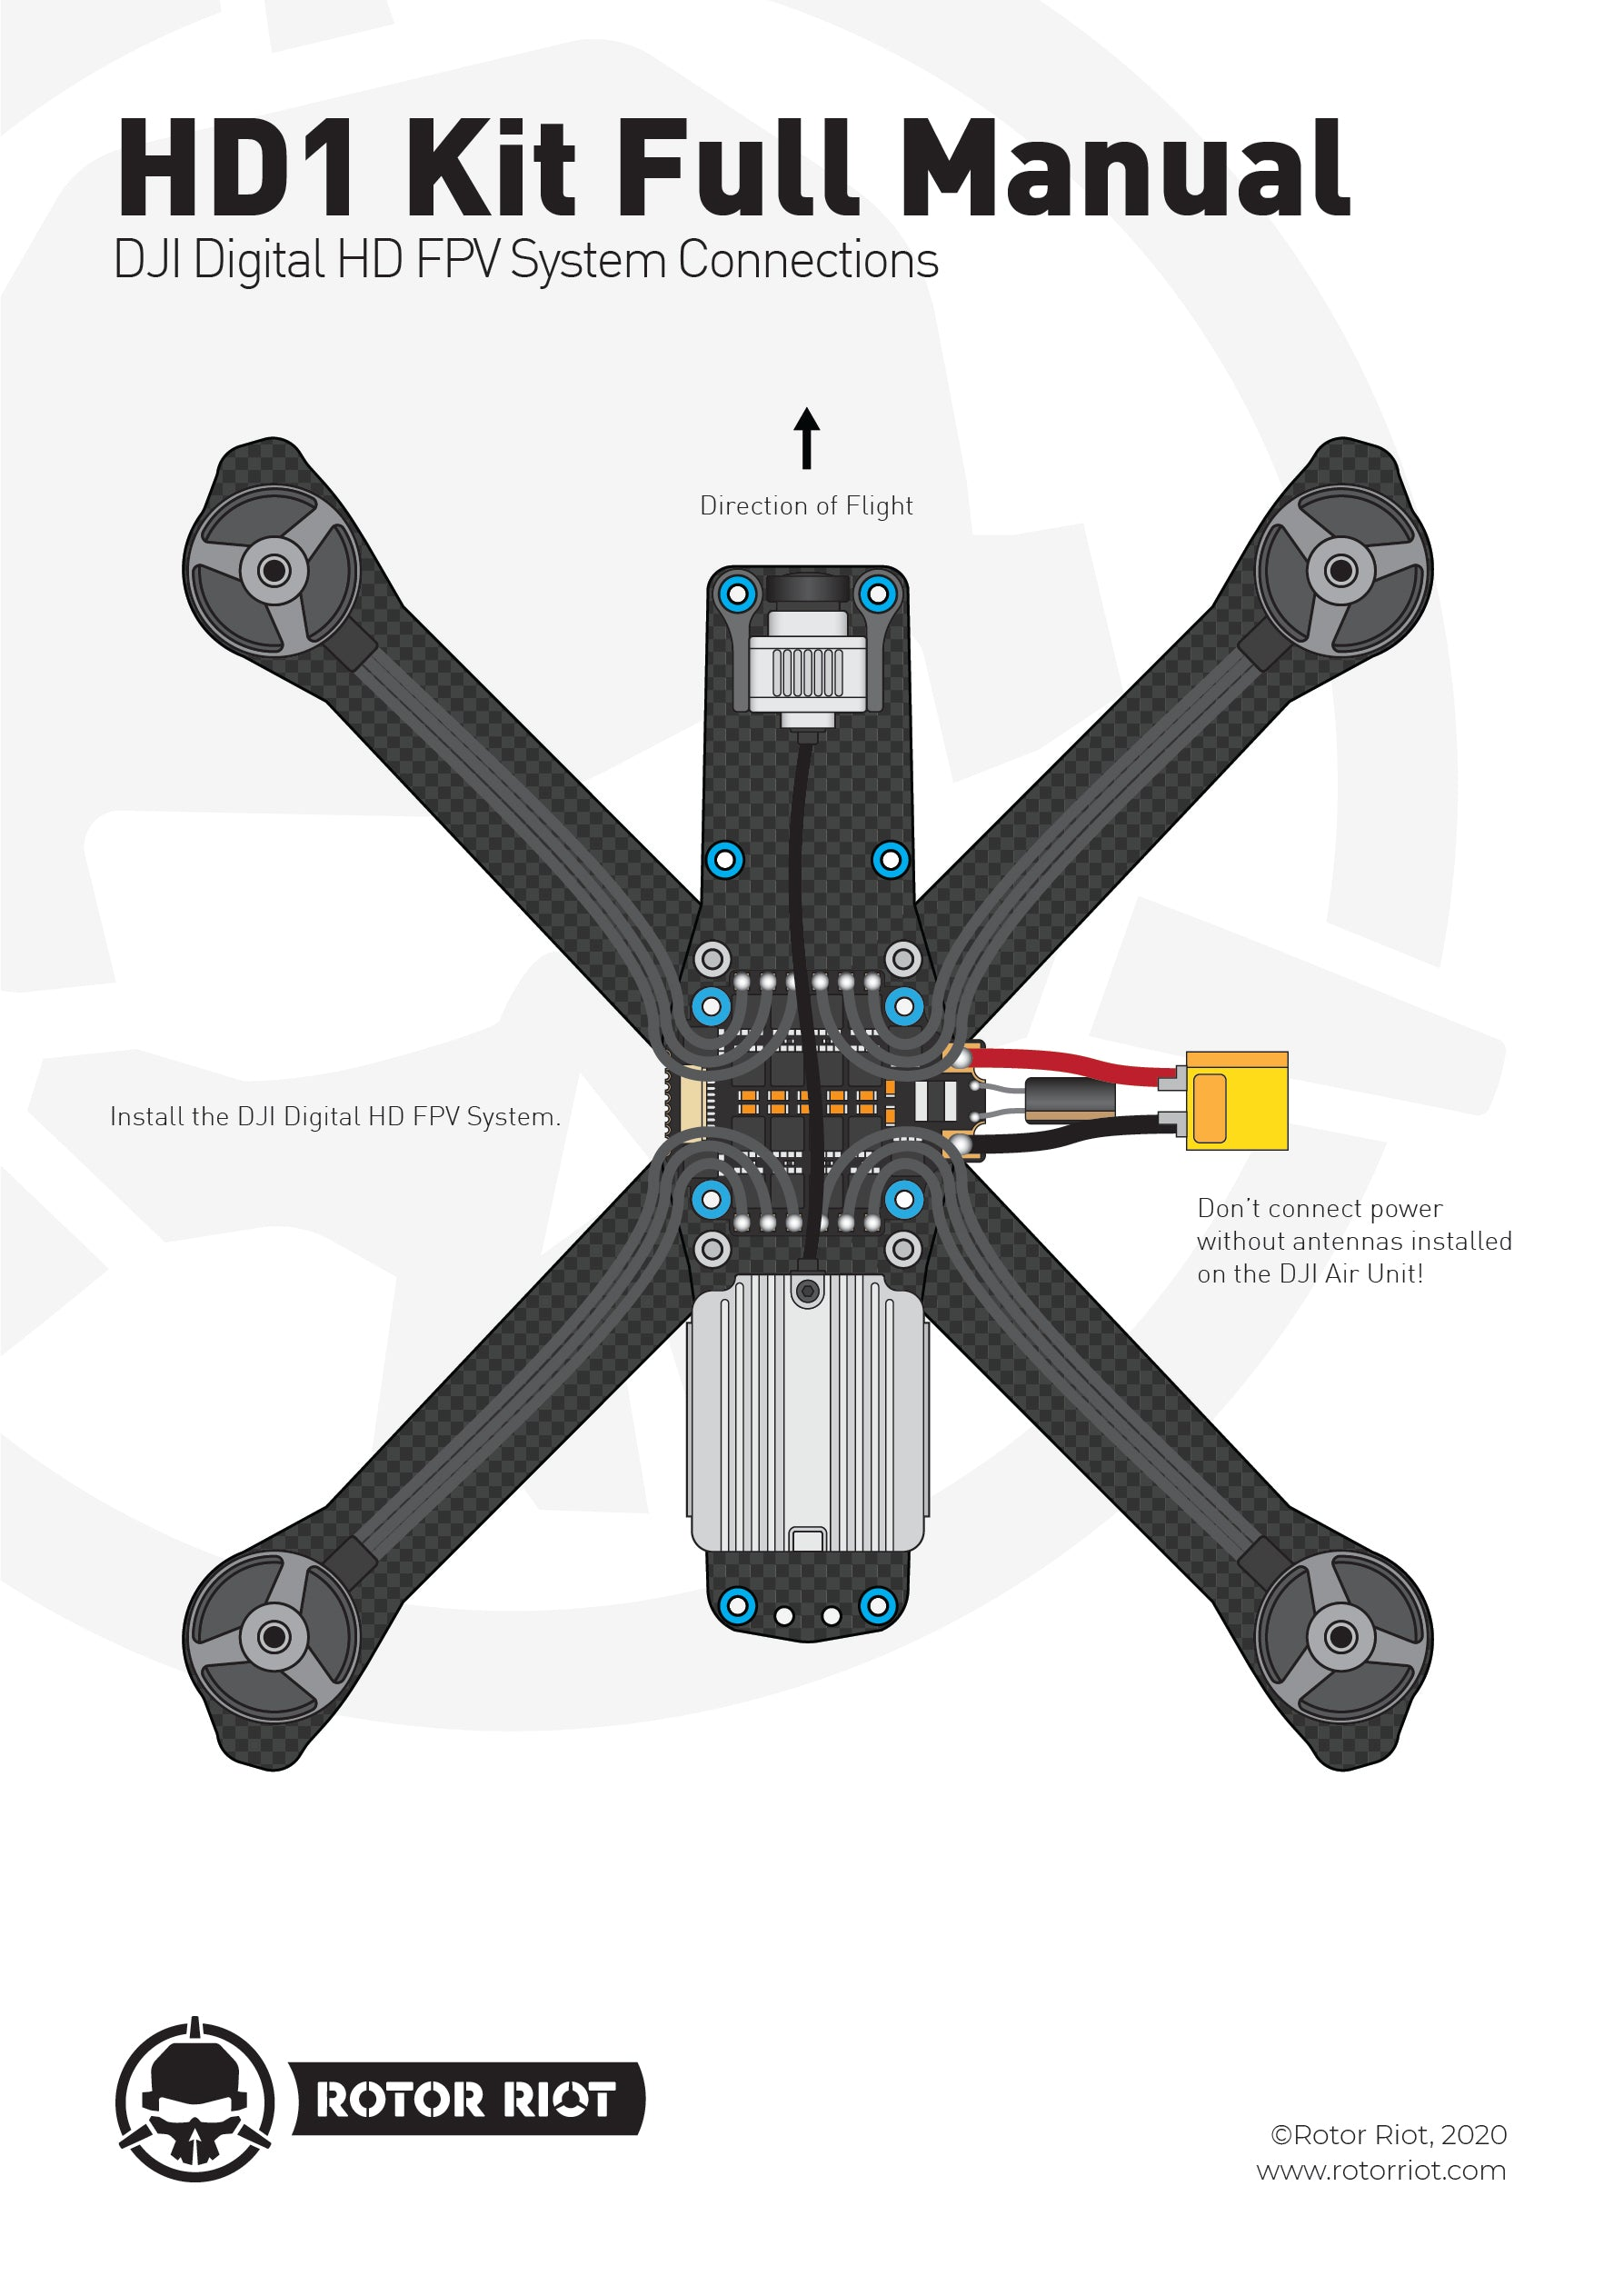 HD1 full manual FPV HD Drone Build Guide